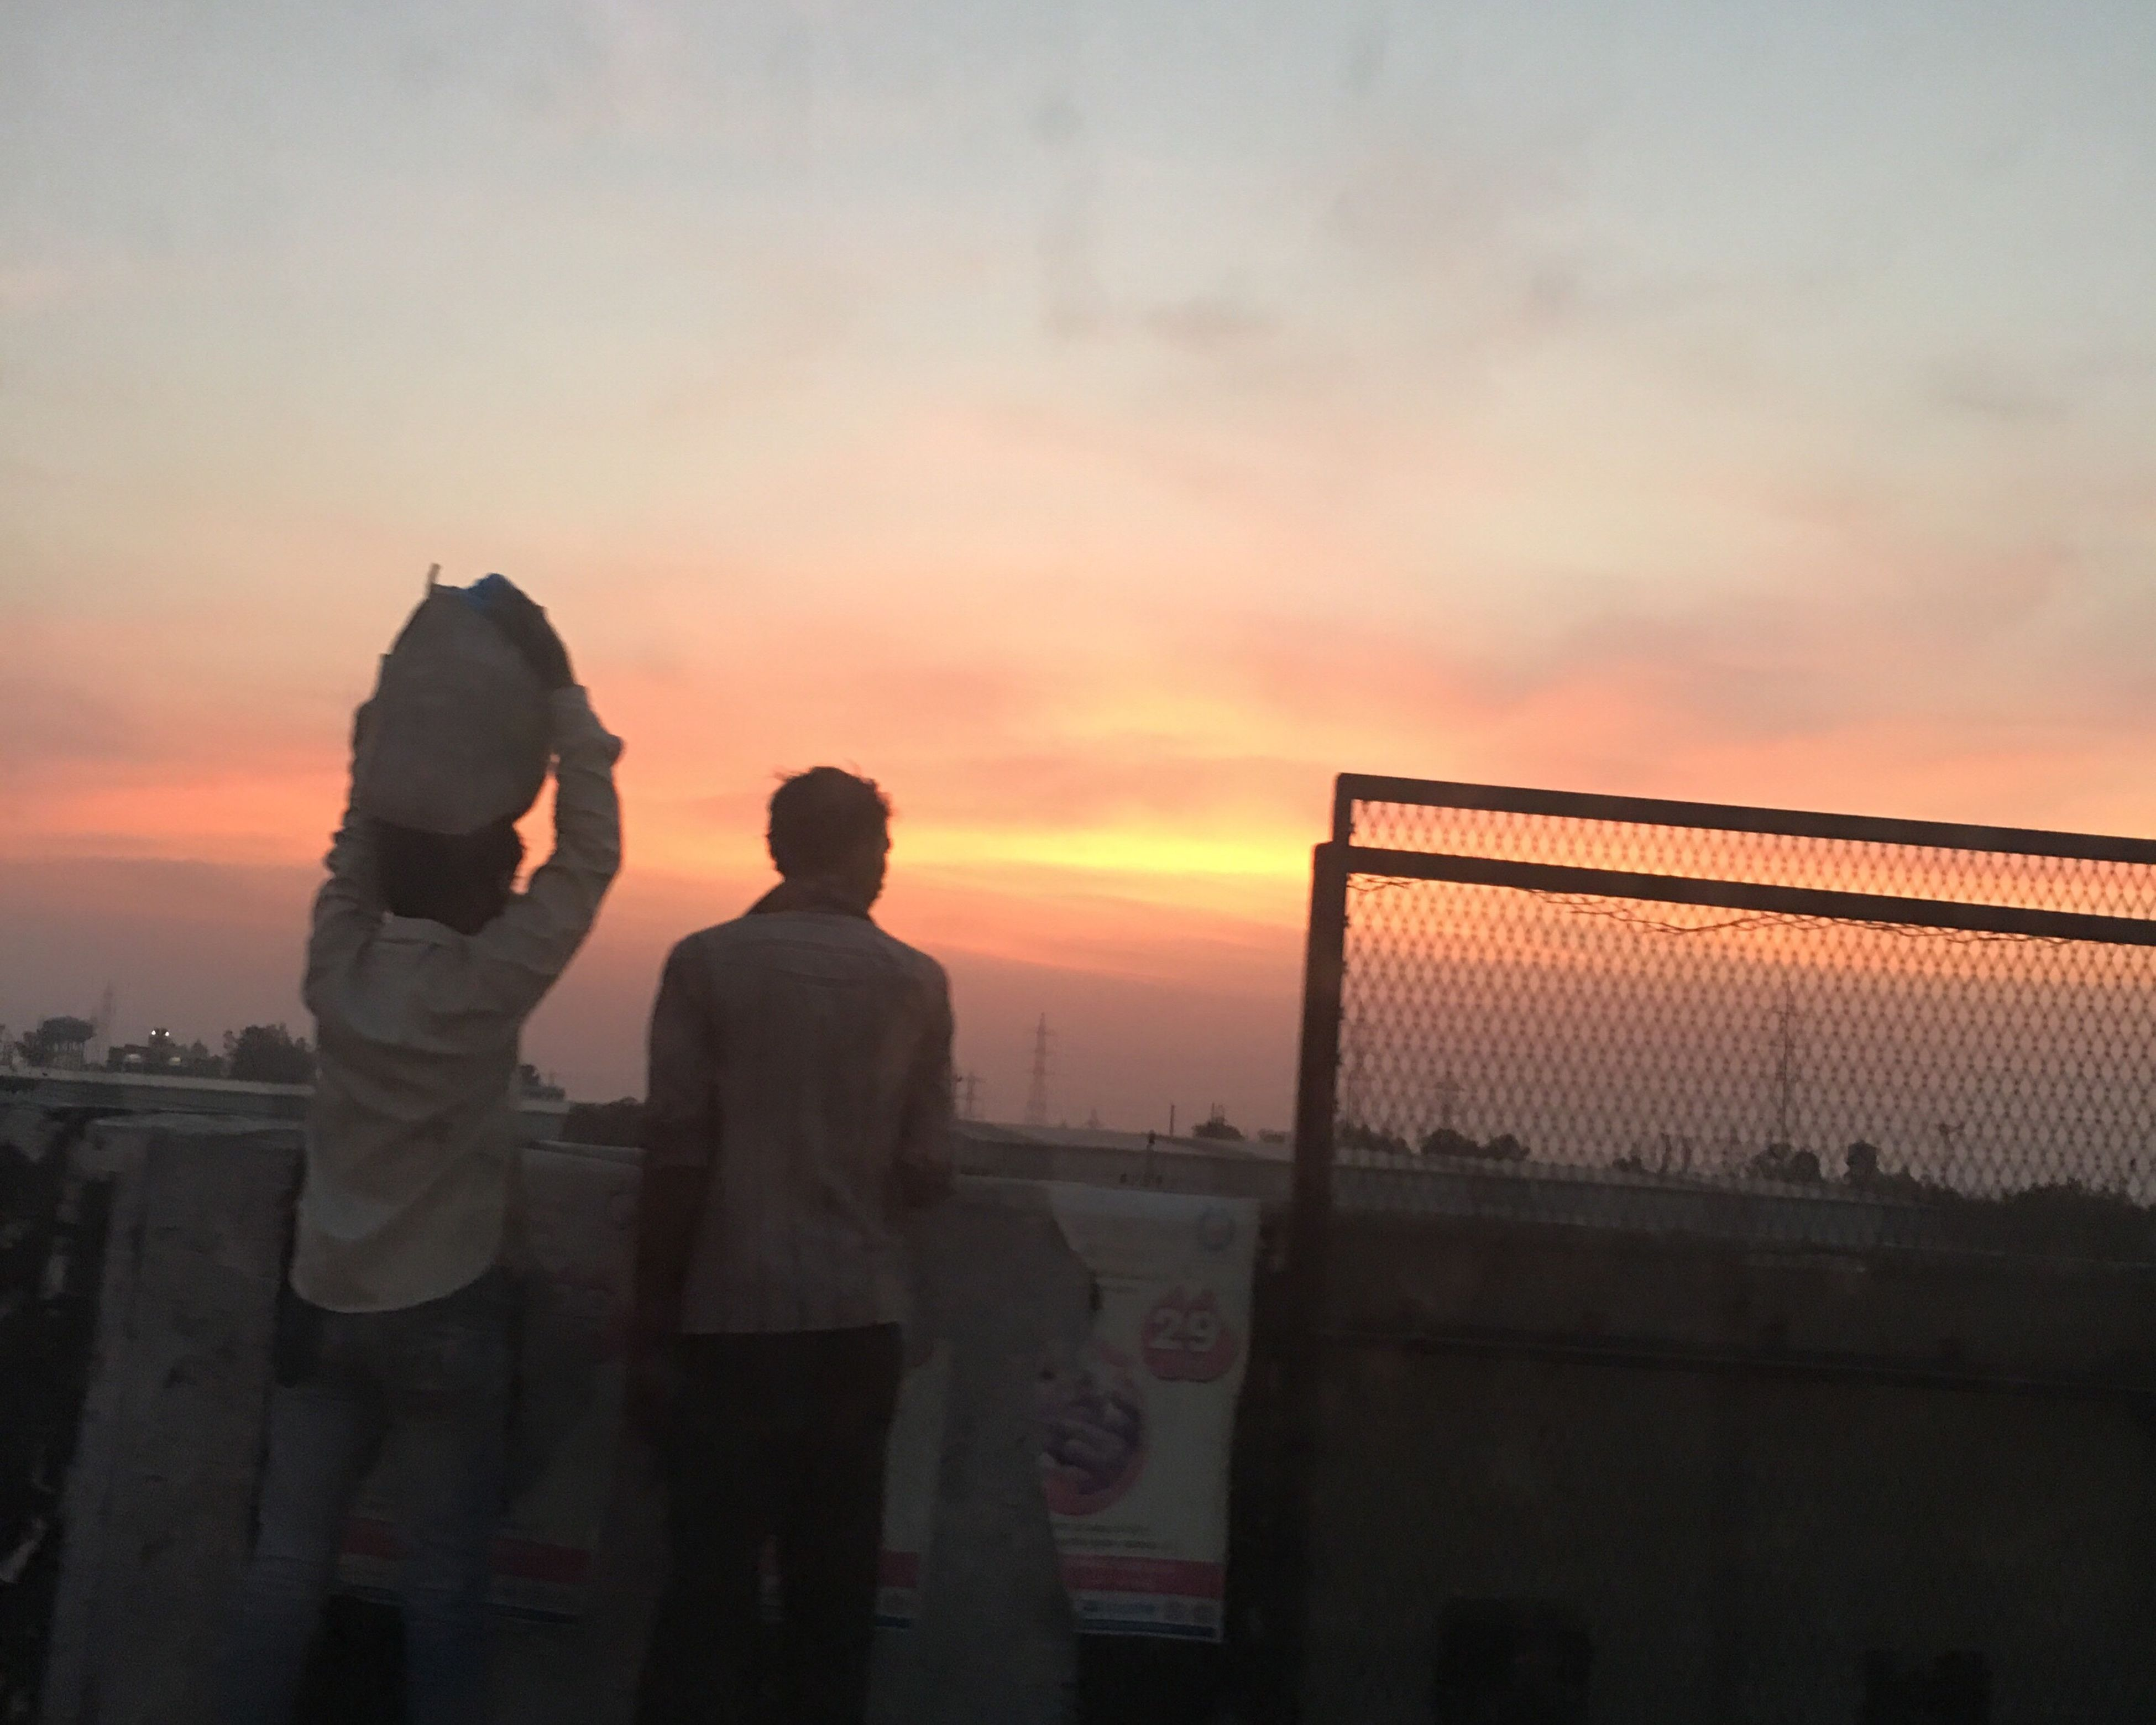 sunset, lifestyles, sky, standing, leisure activity, orange color, men, silhouette, cloud - sky, rear view, railing, built structure, three quarter length, full length, architecture, person, casual clothing